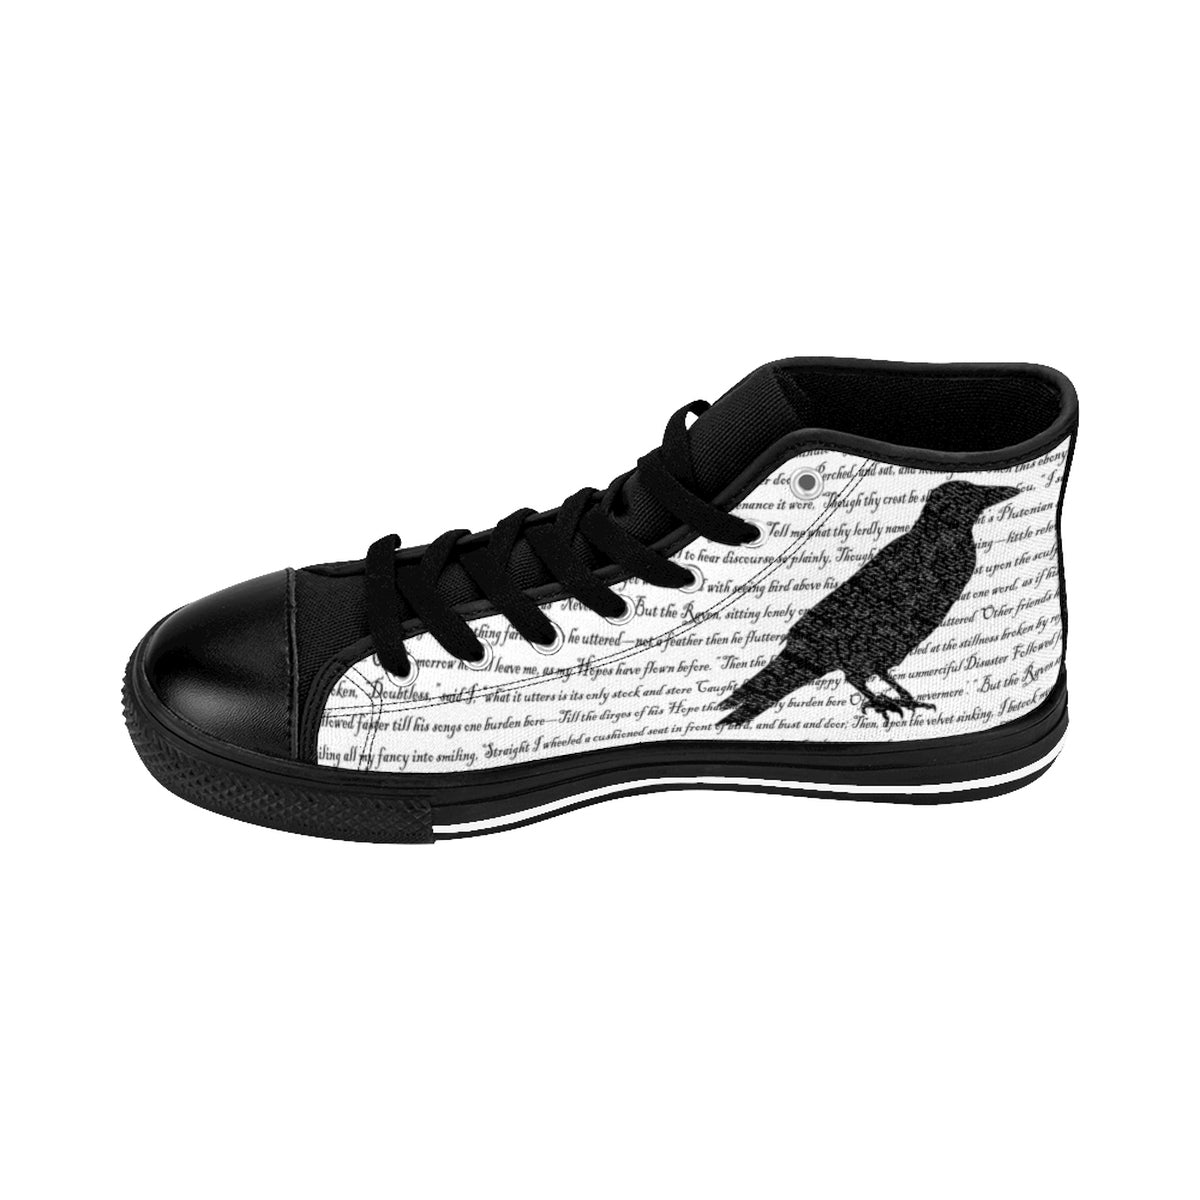 Edgar Allan Poe's The Raven Men's Sneakers-Starry Meadows